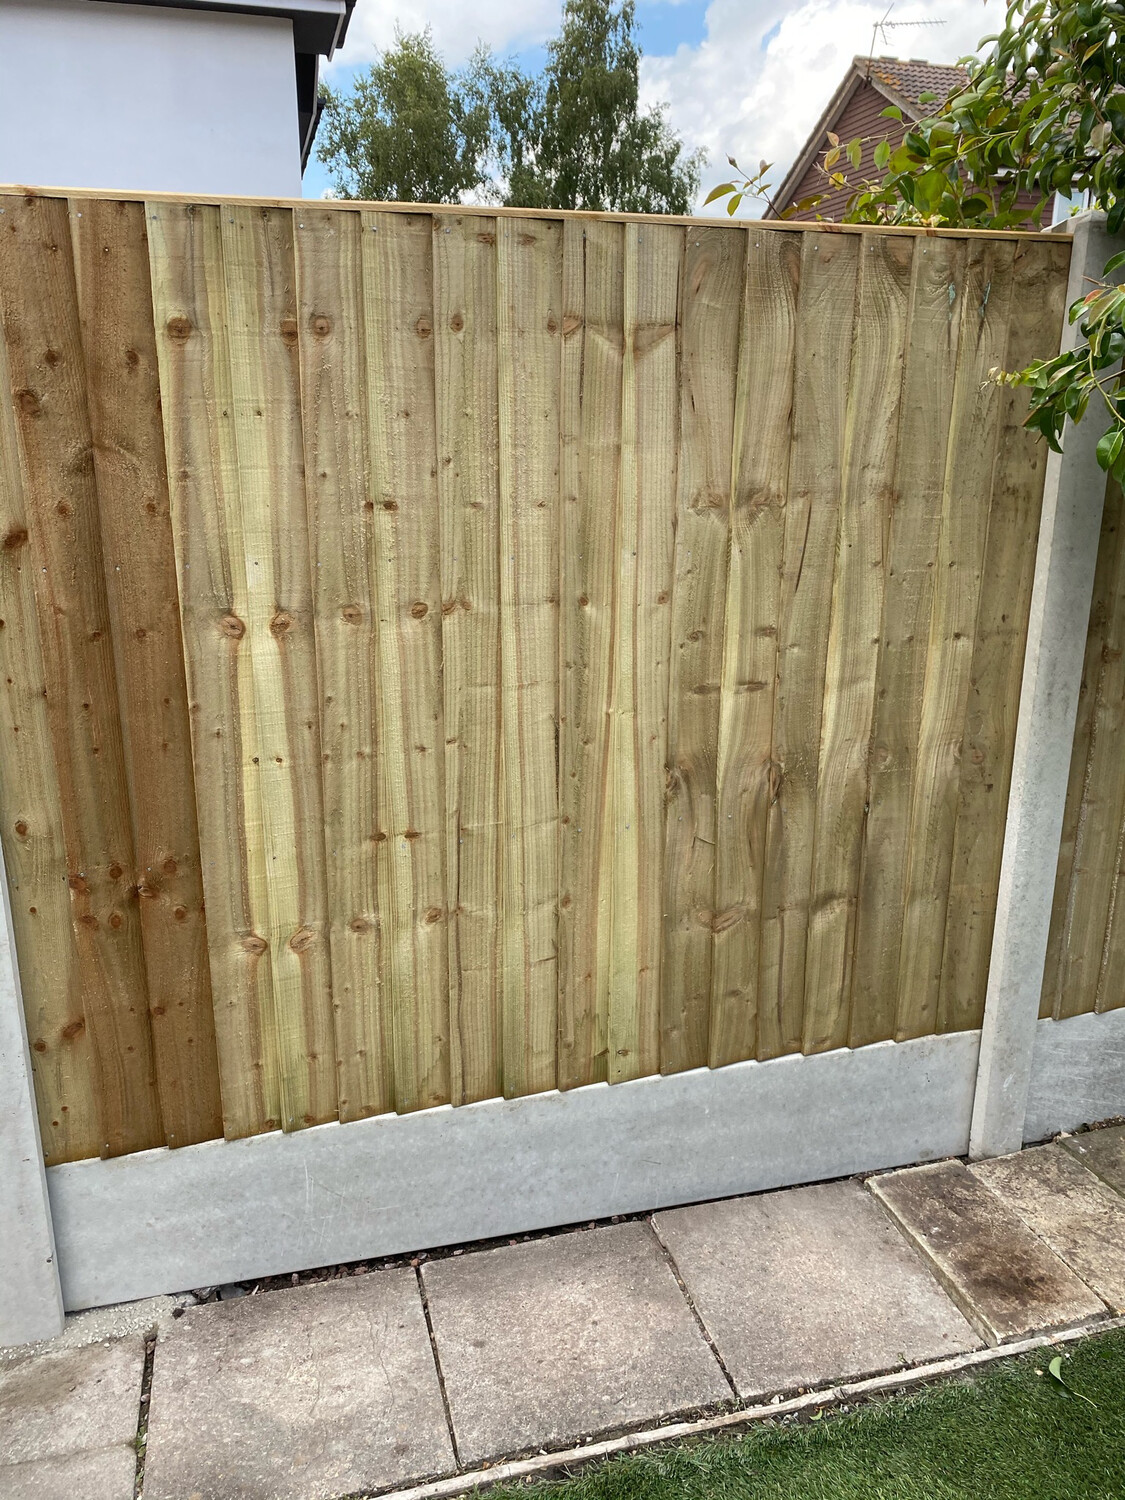 "9"" Concrete Gravel Board       8ft 6"" Concrete Slotted Post        5ft 6"" Close Board Panel.              2 X Bags Post Mix"